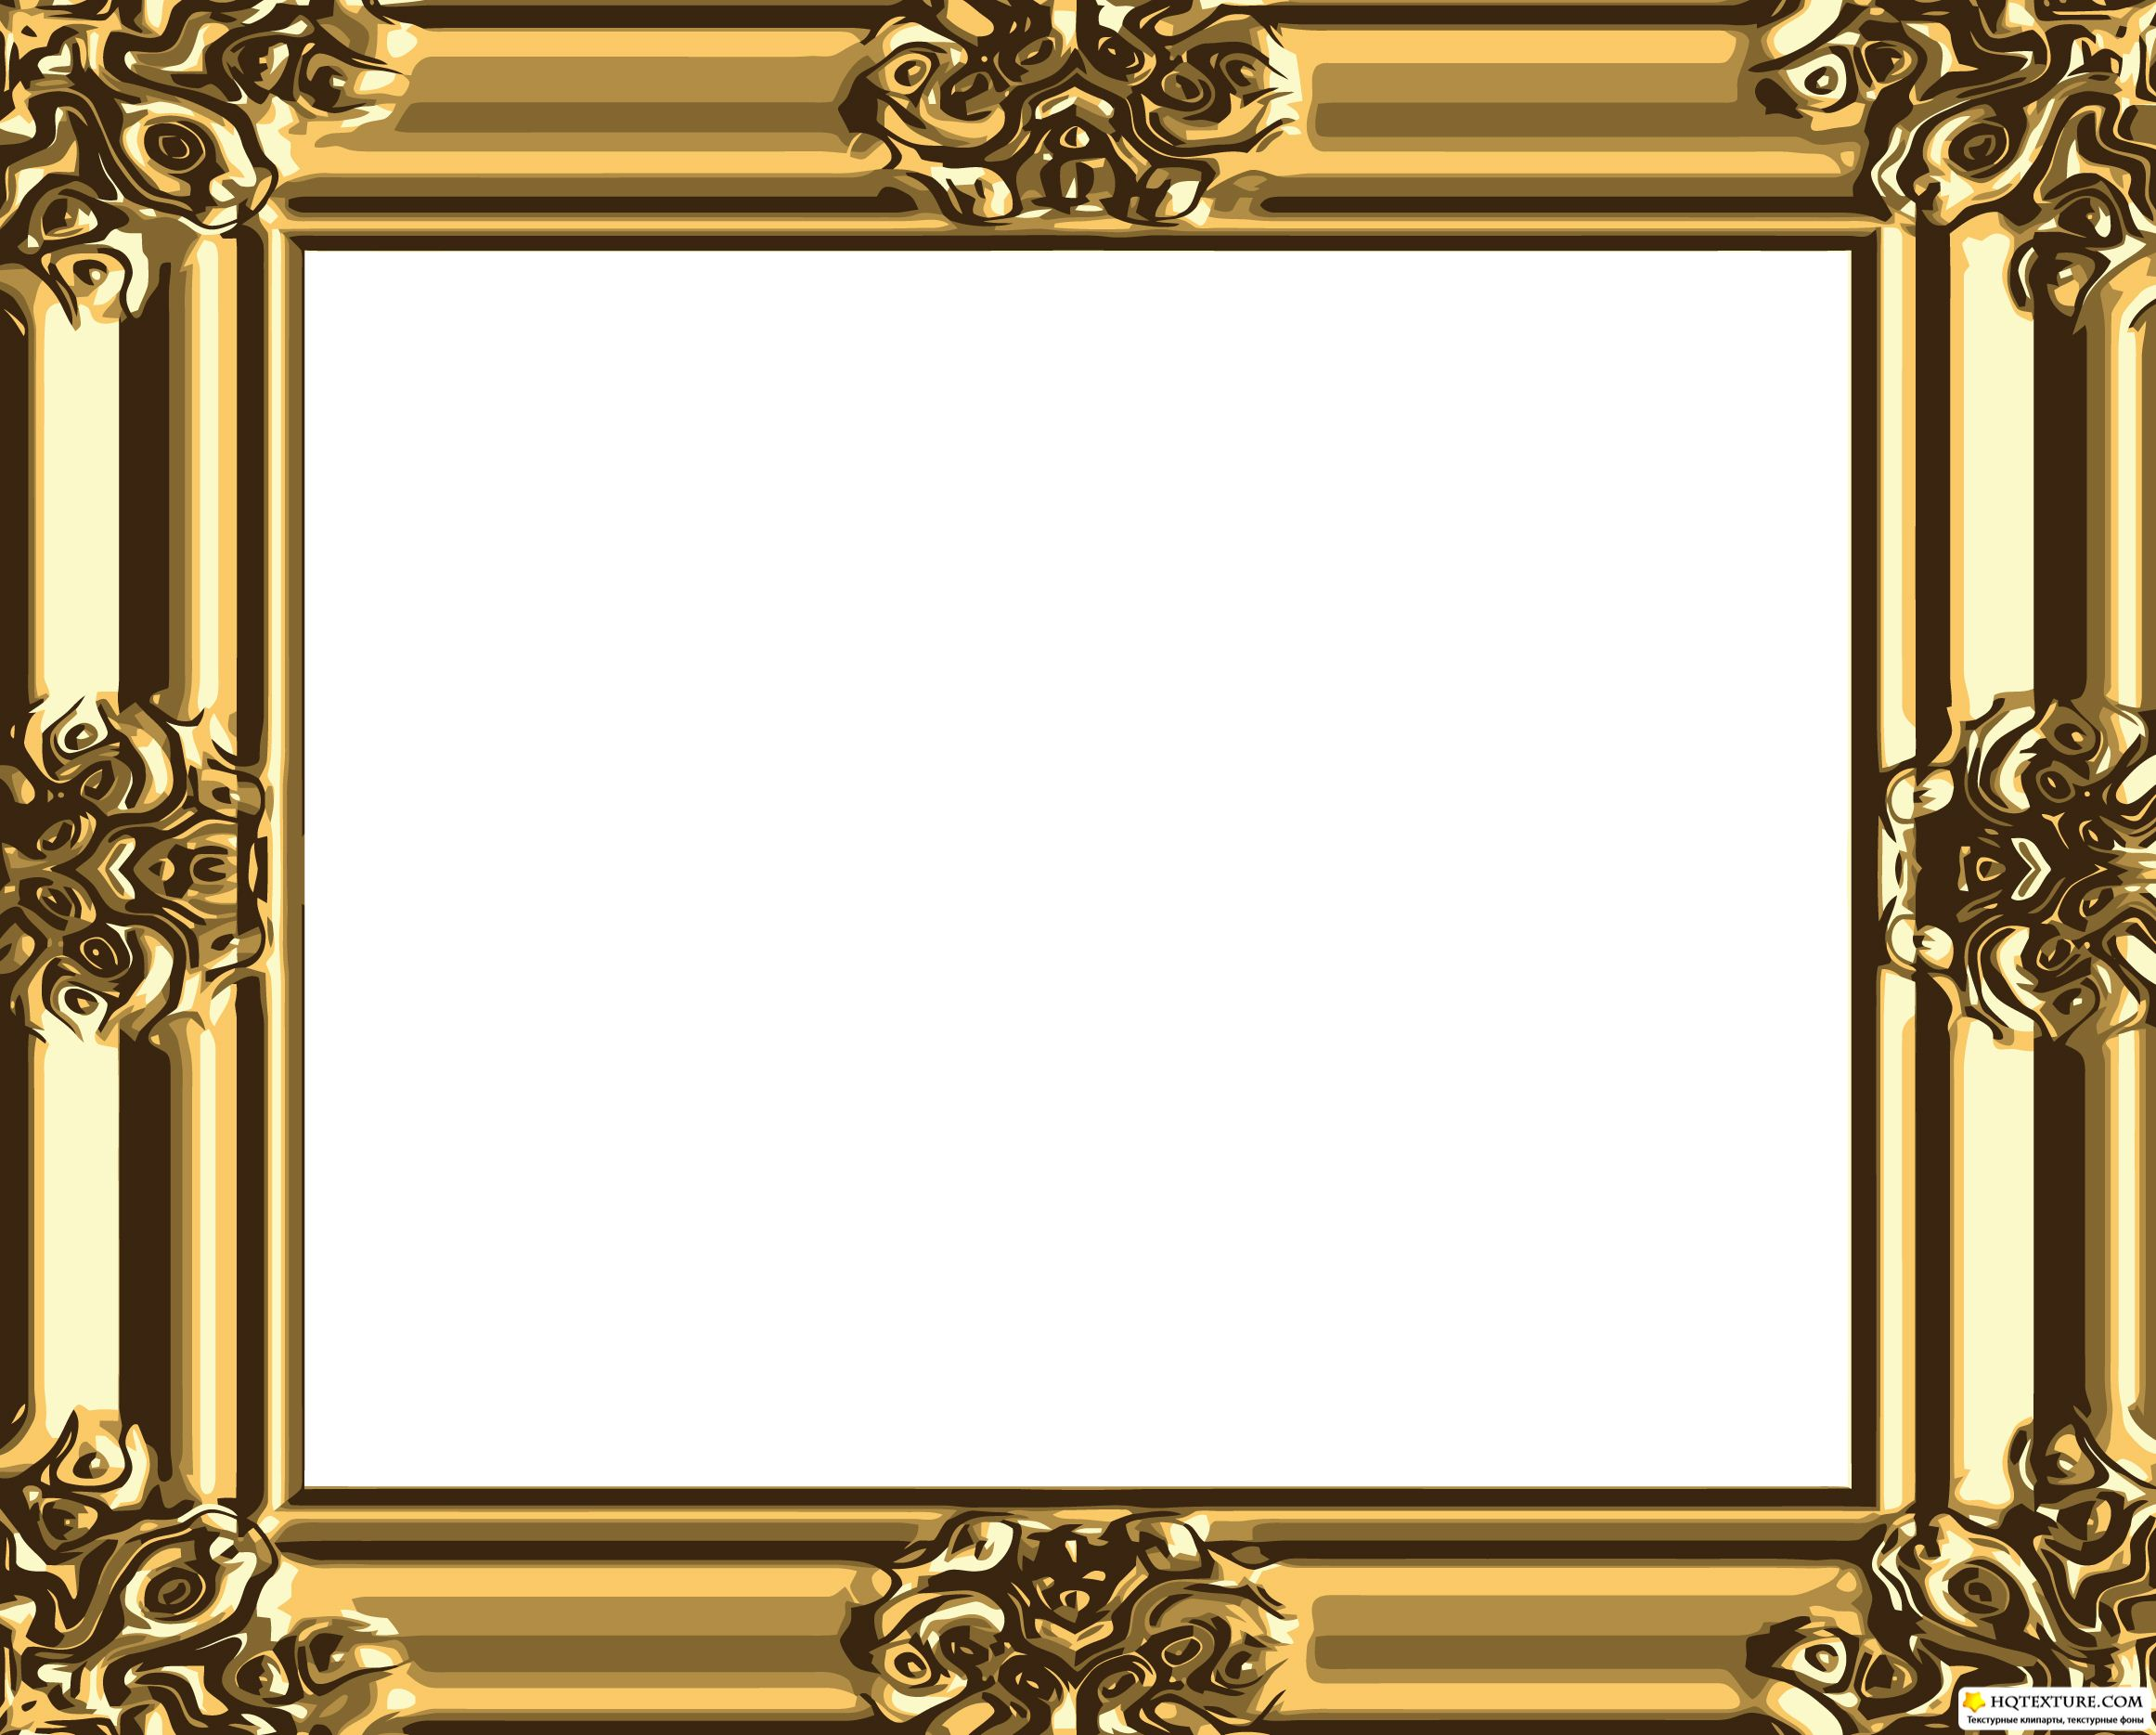 11 vintage frames psd images picture frame photoshop psd